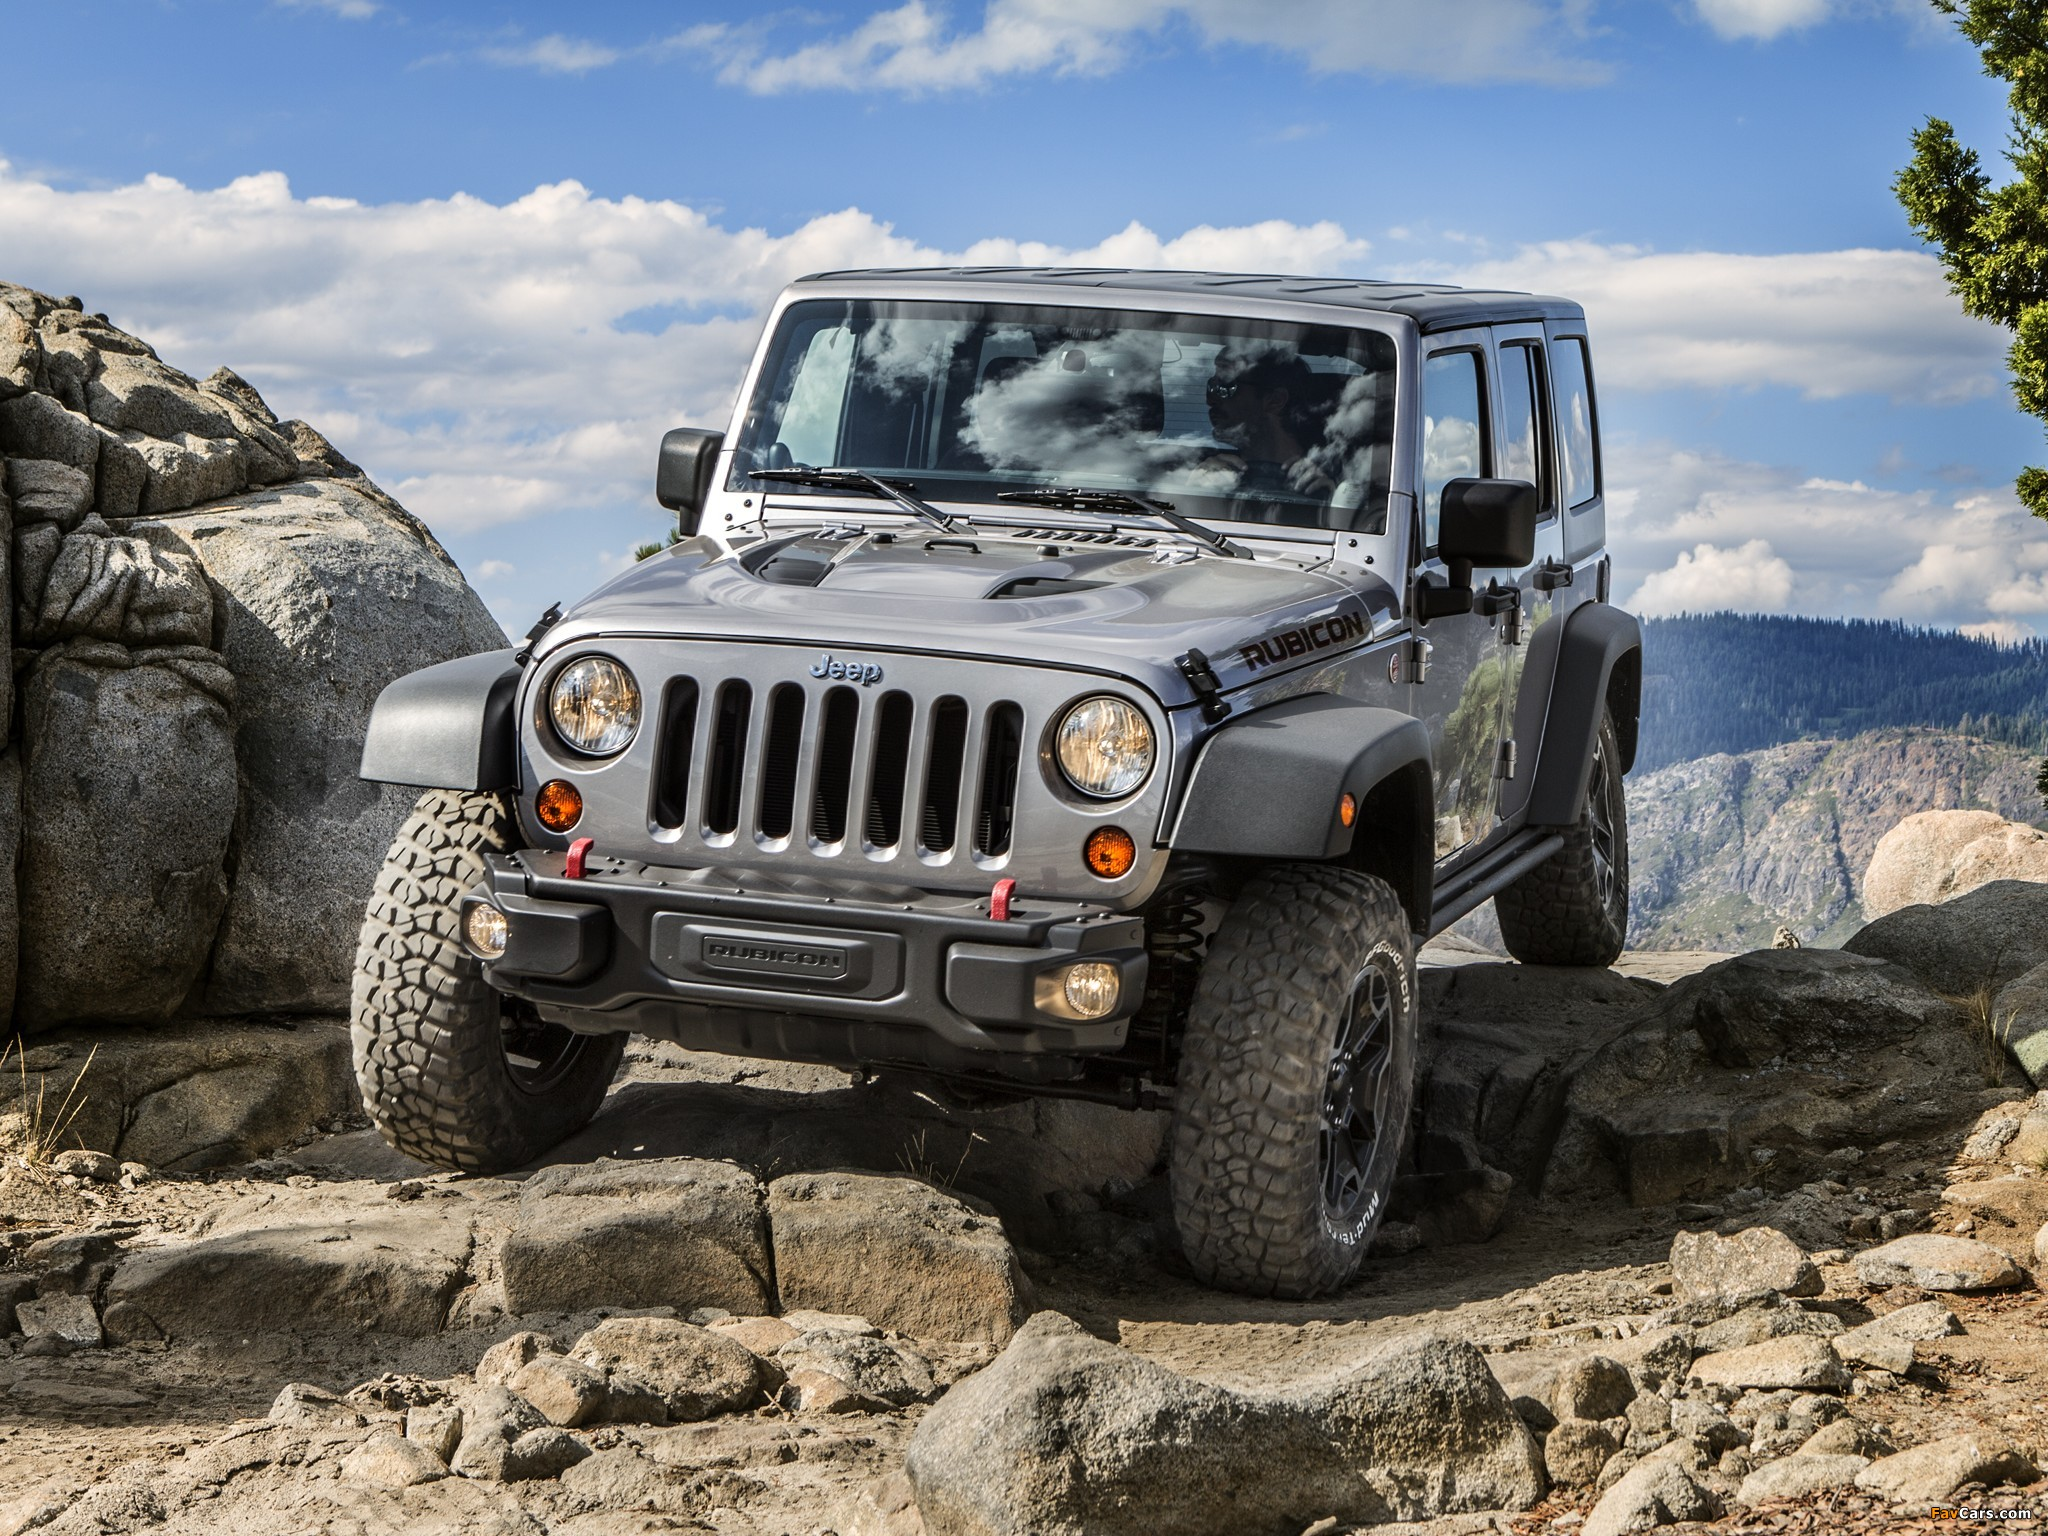 Jeep Wrangler Unlimited Rubicon 10th Anniversary (JK) 2013 wallpapers (2048 x 1536)